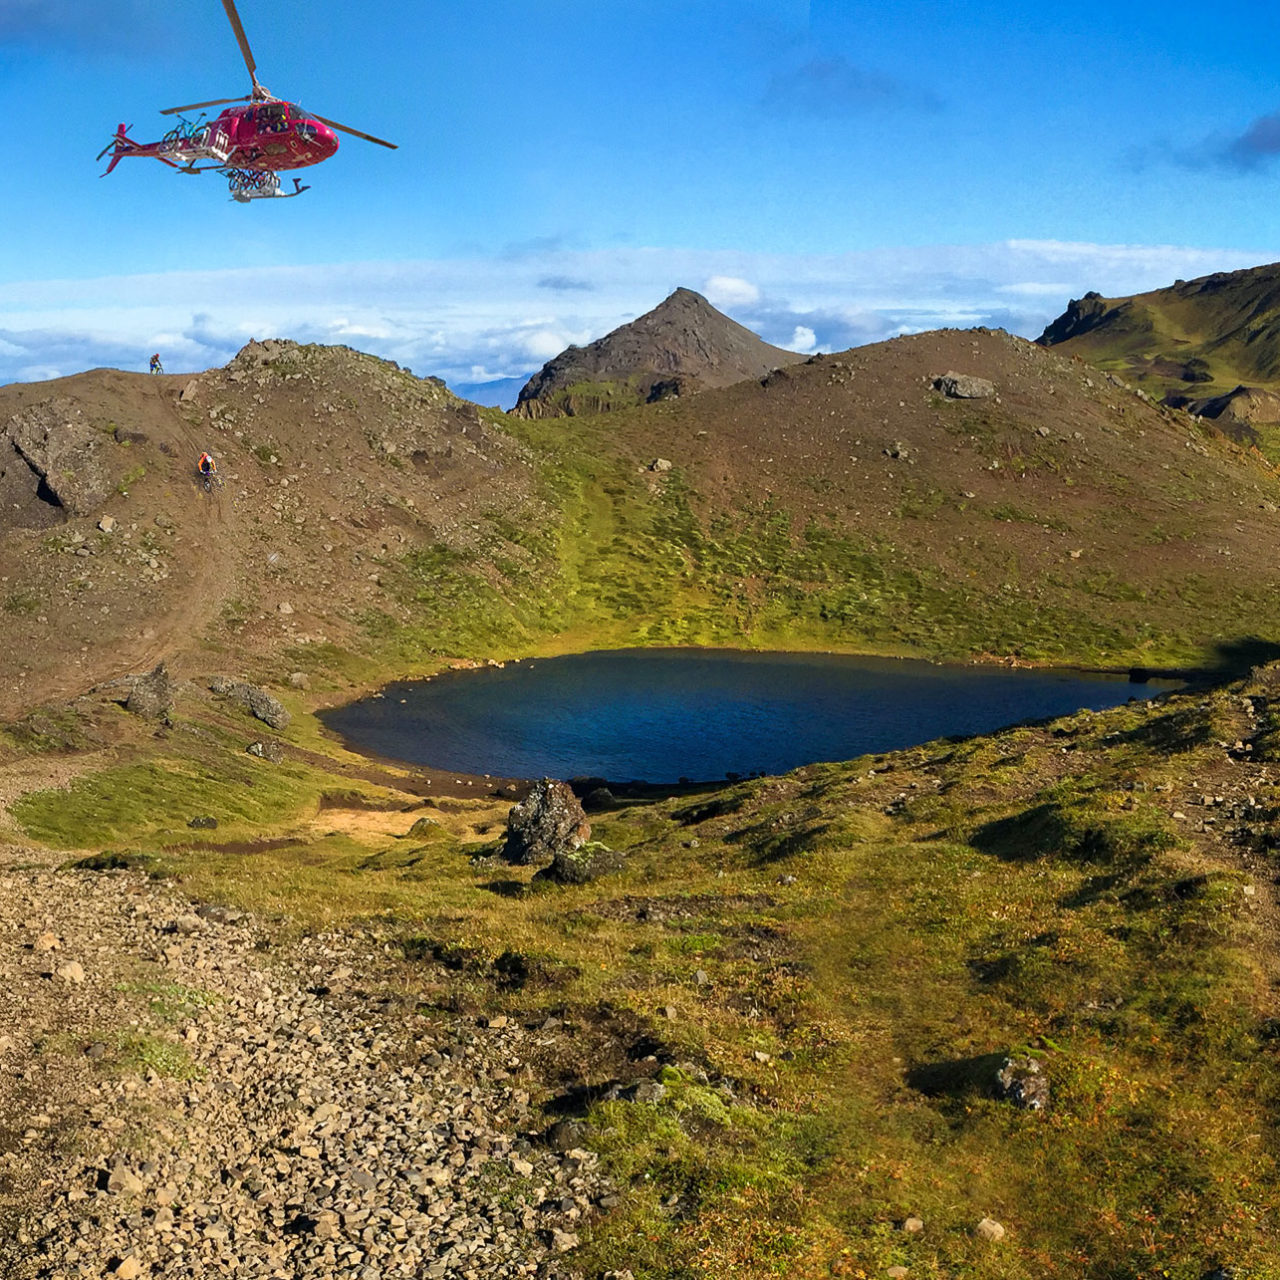 helicopter in air over lakes and craters